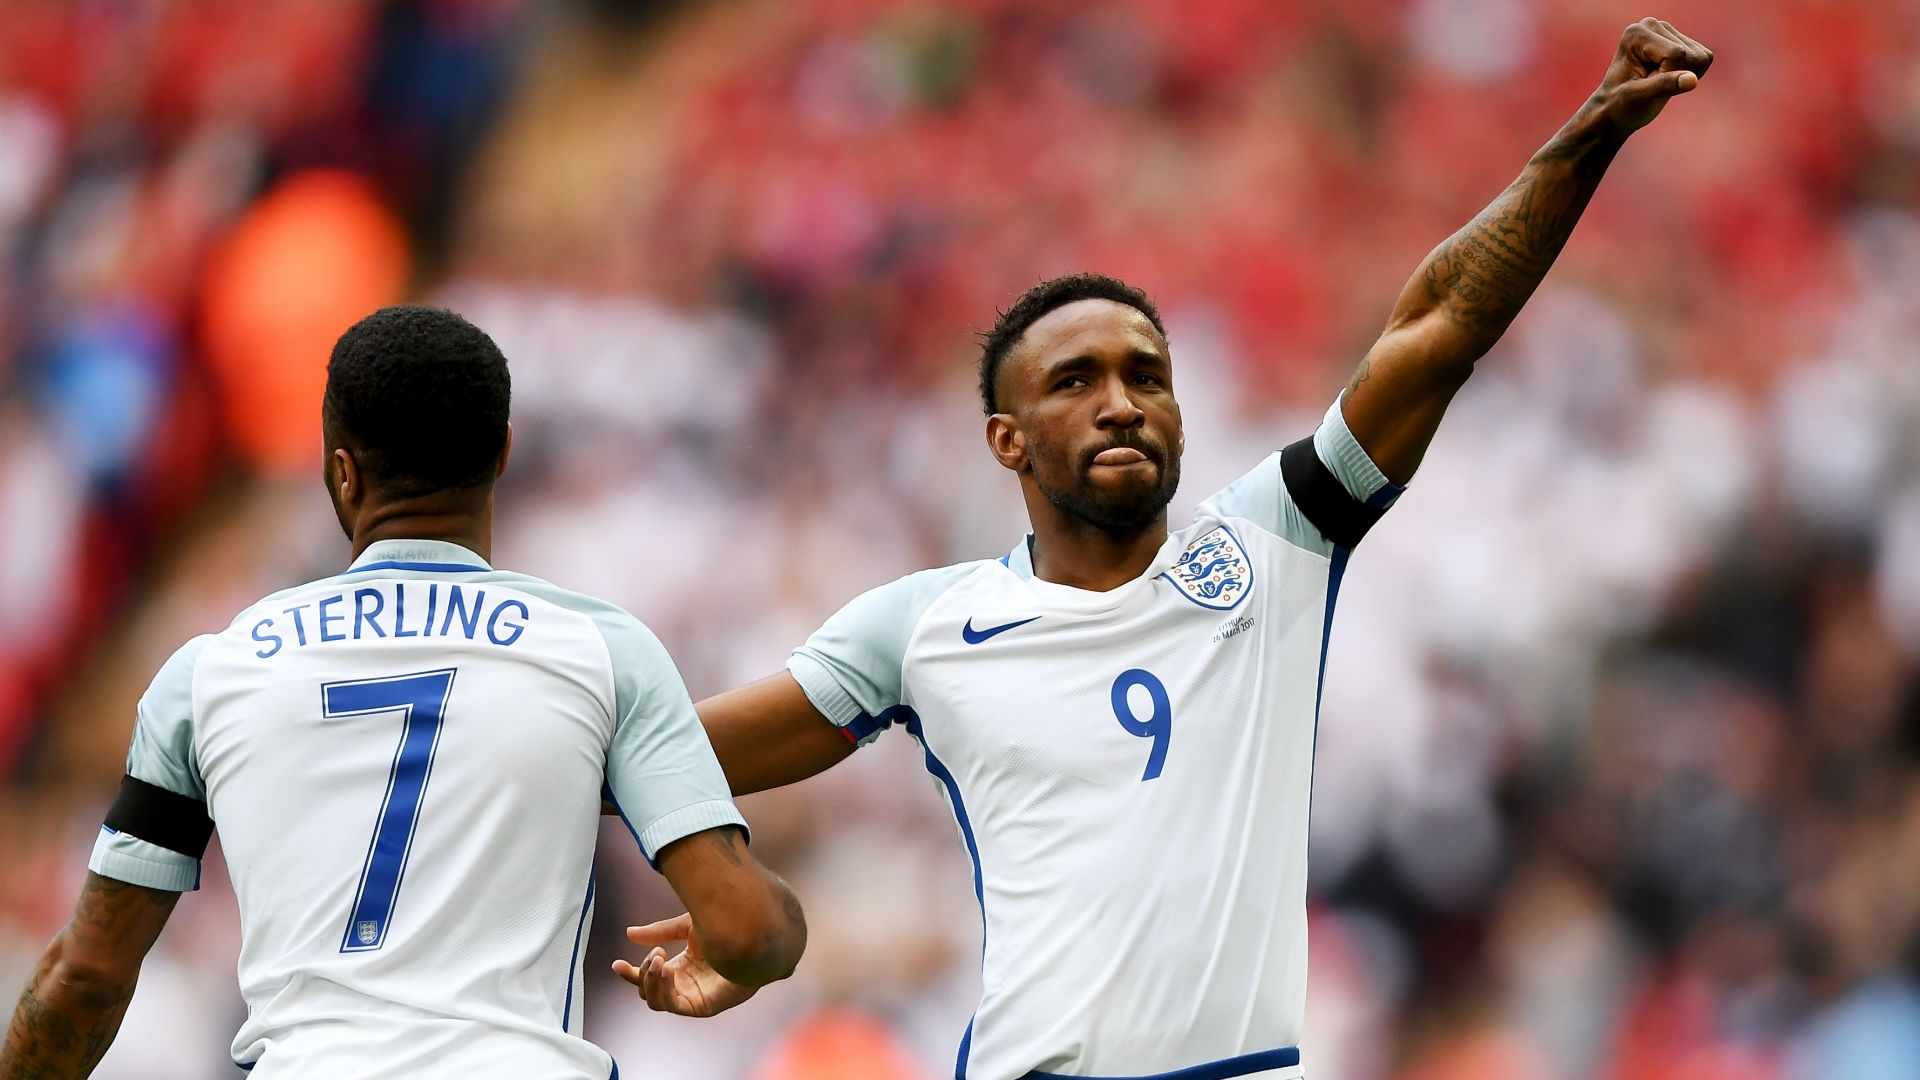 Defoe has been called up for England's next 2 fixtures